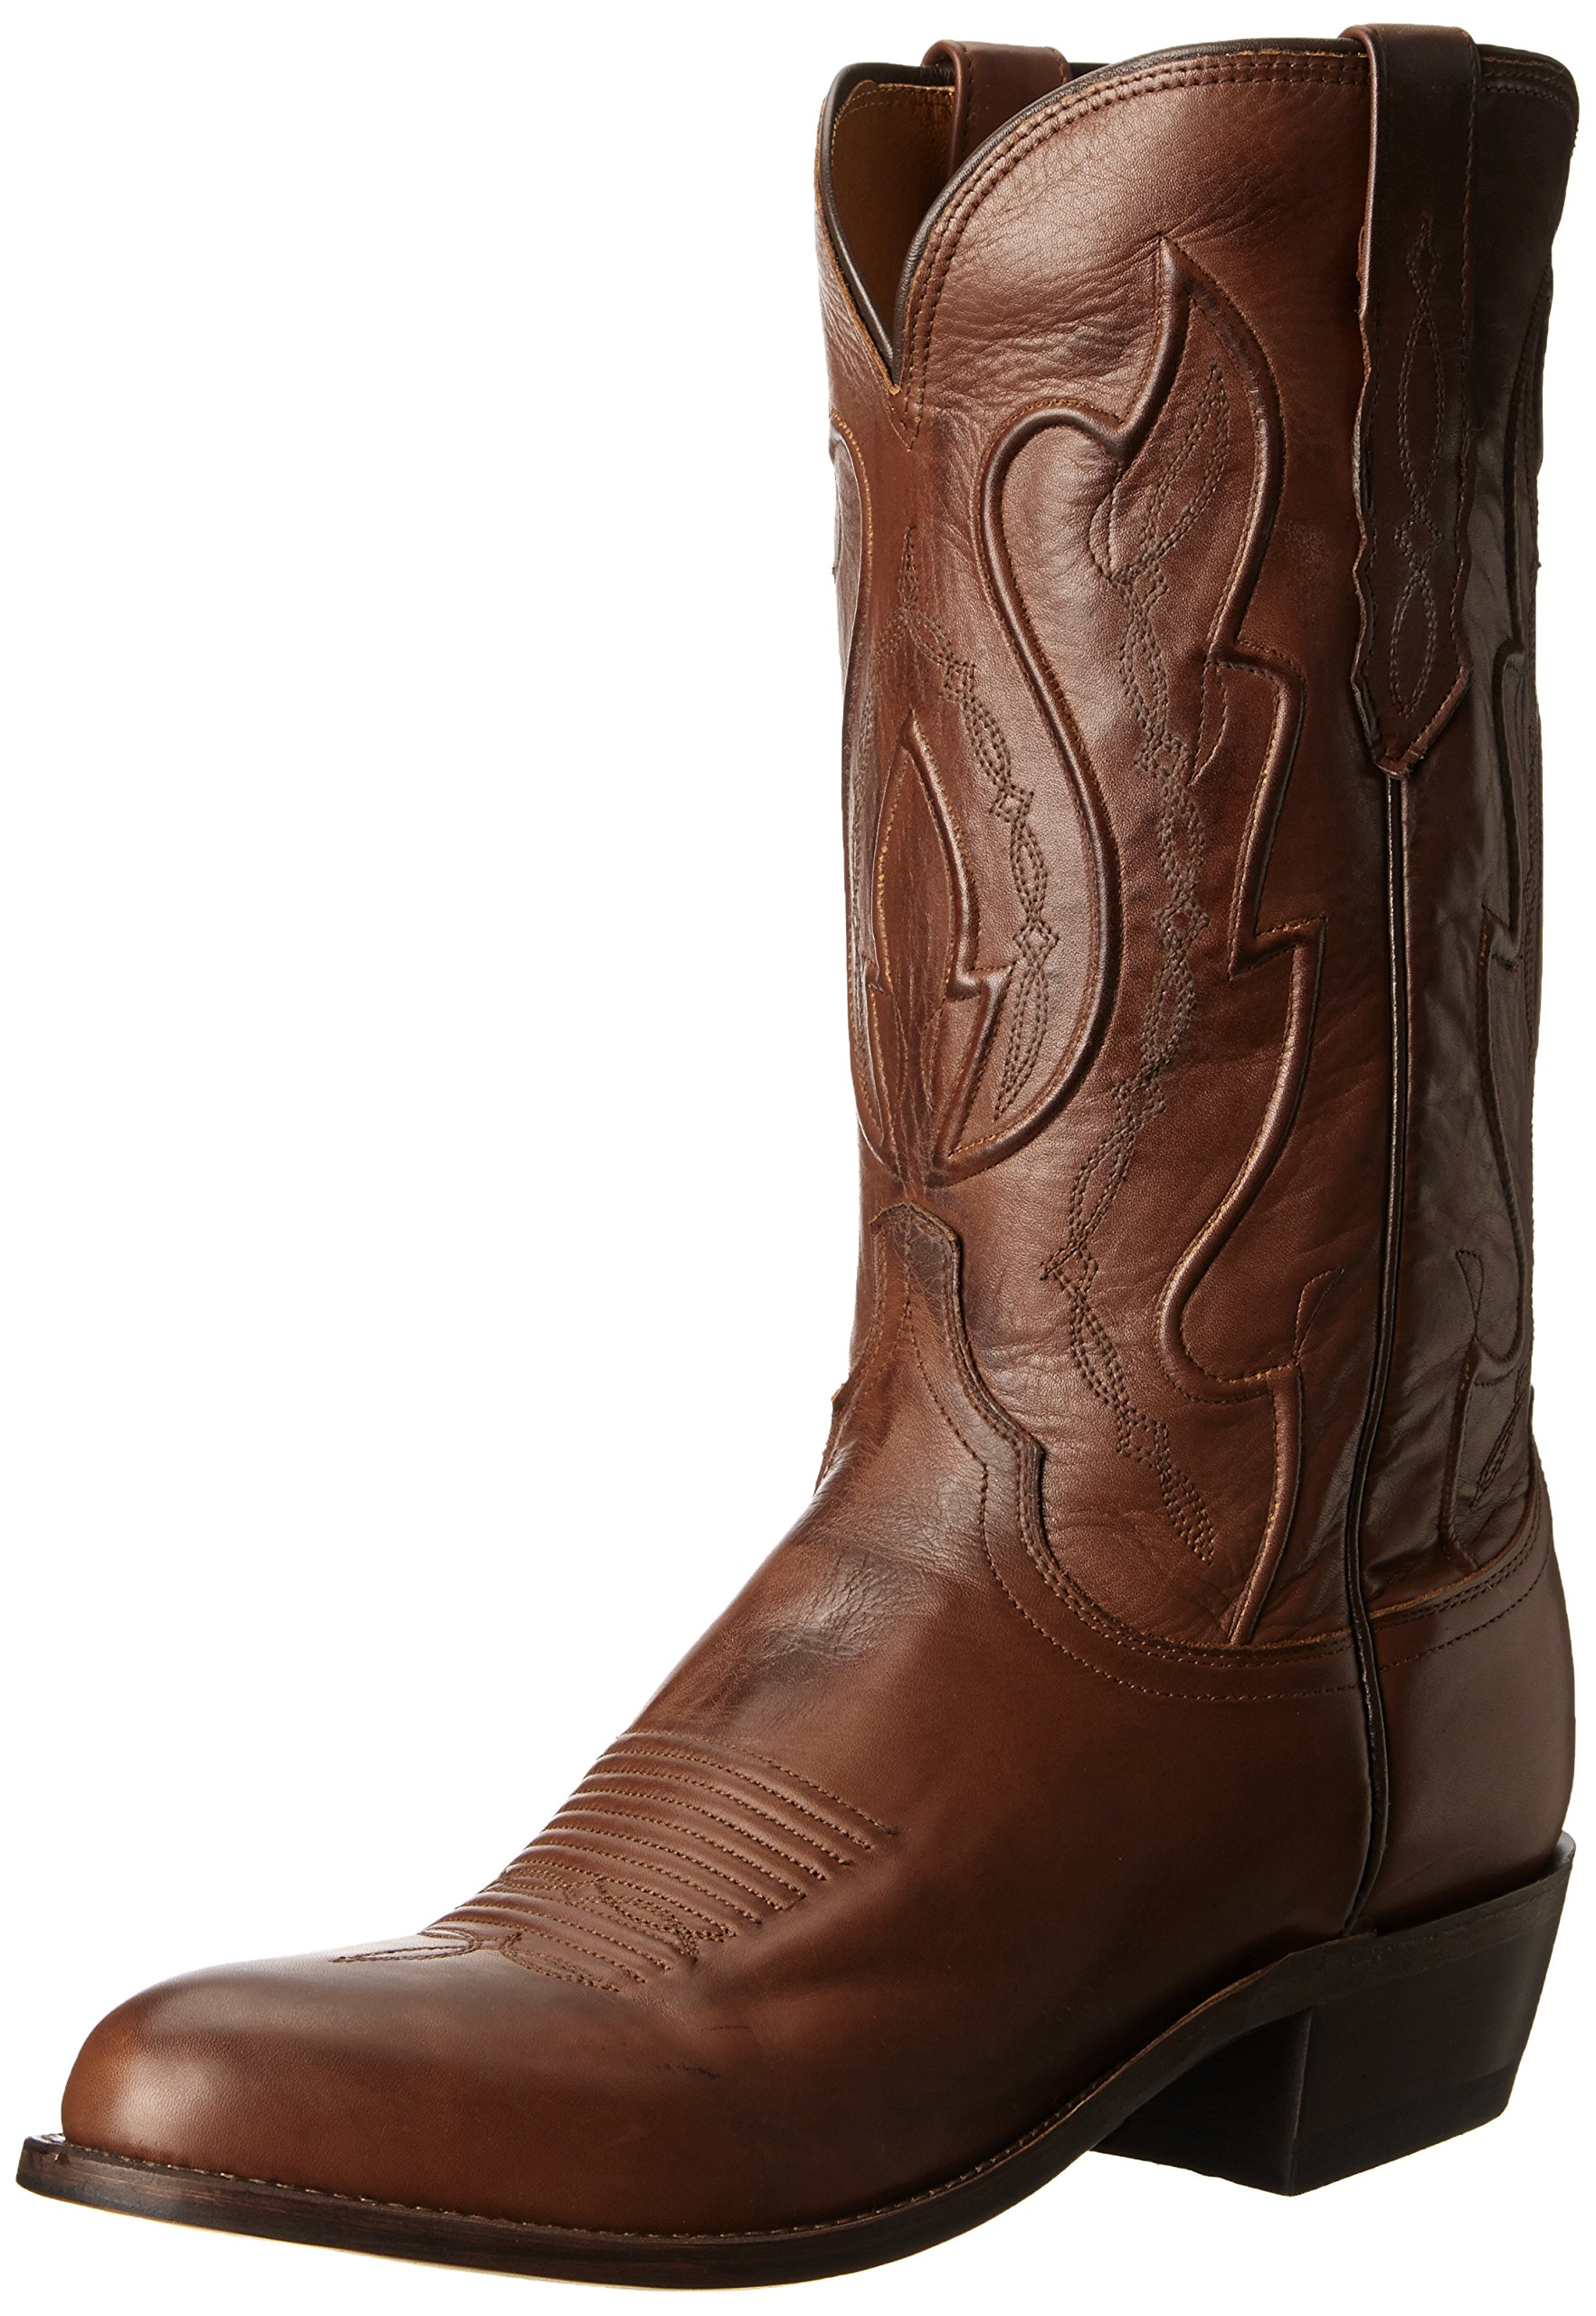 Lucchese Classics Men's Cole-TN RNCH Hand Riding Boot, Tan Ranch, 11.5 D US